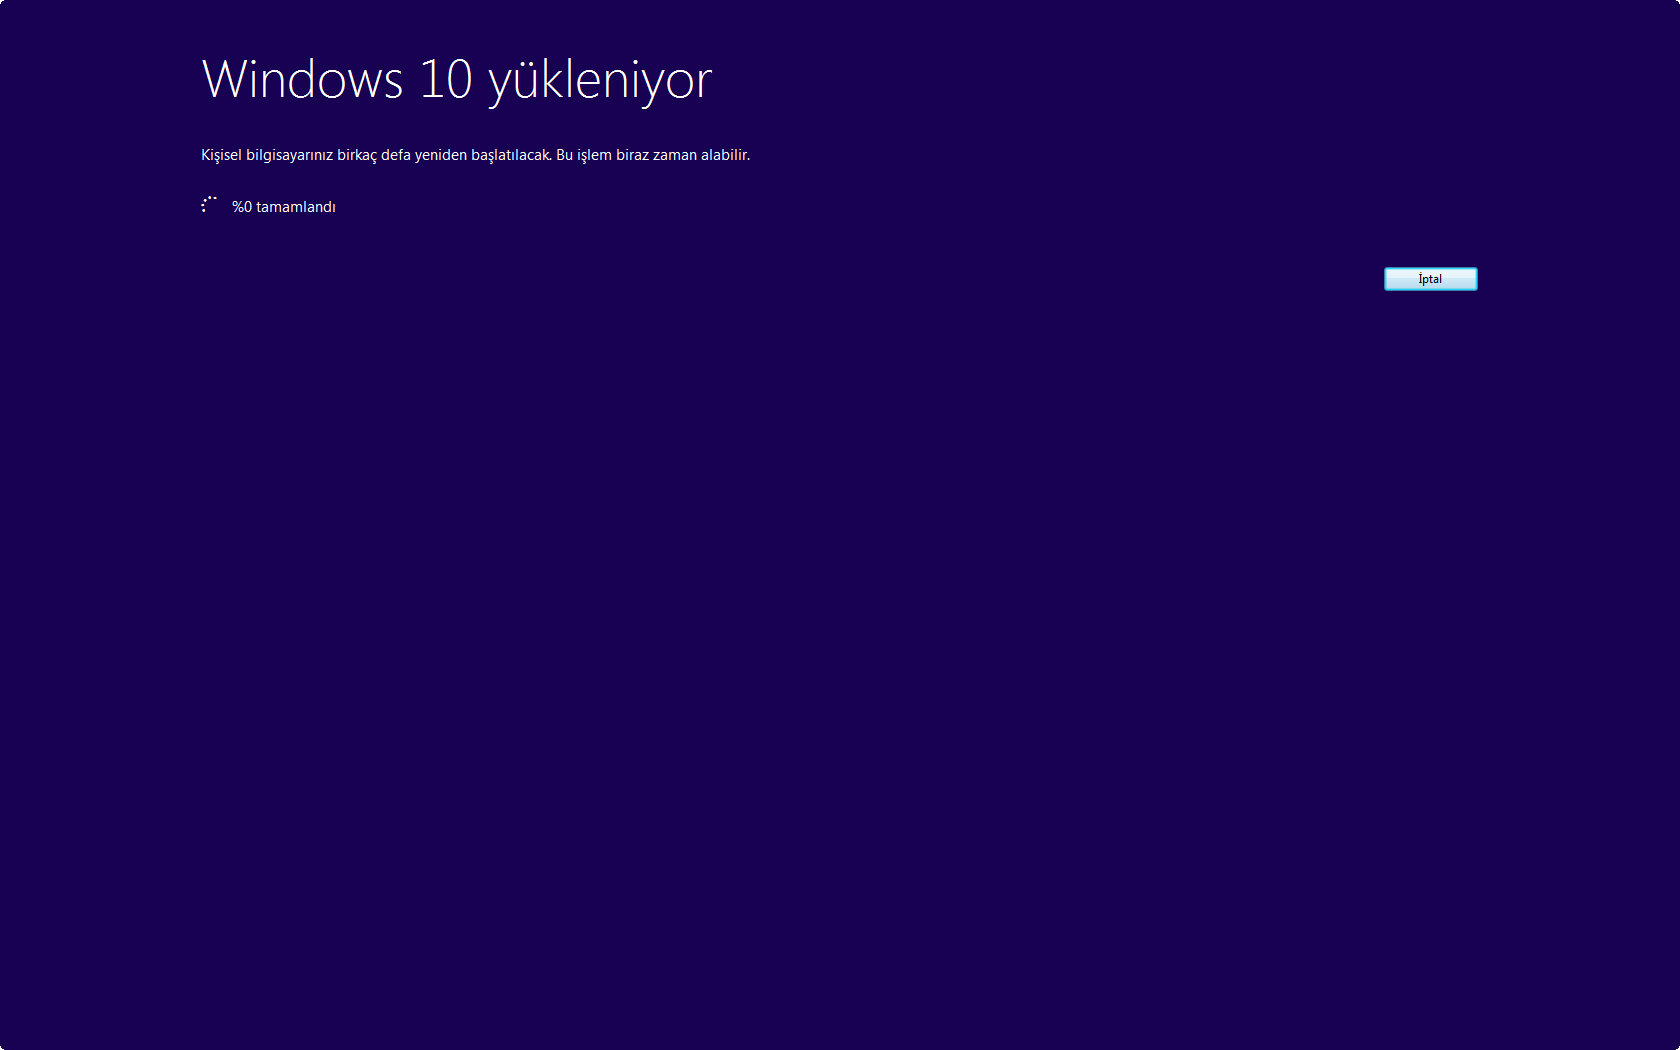 Windows 10 yükleniyor